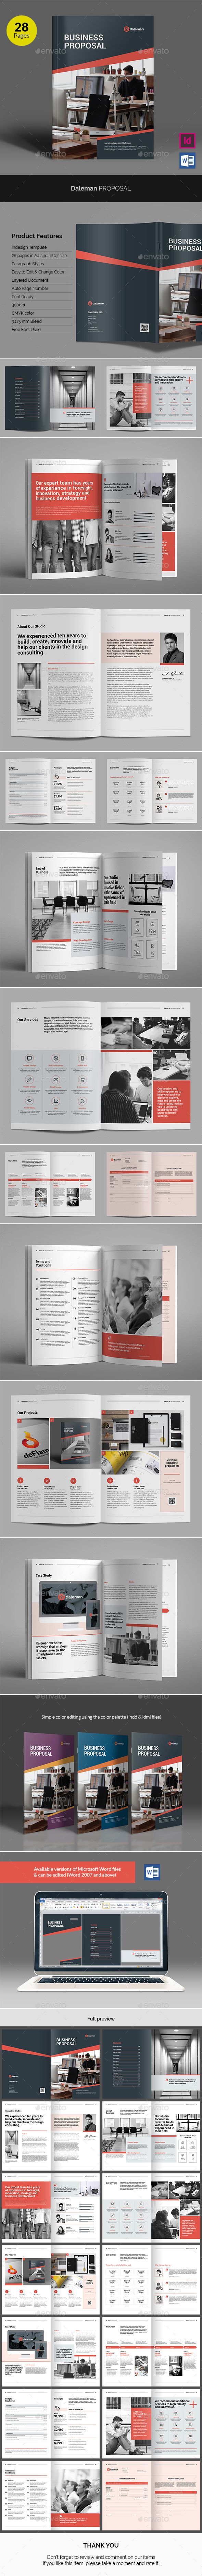 GraphicRiver Daleman Business Proposal 21005663